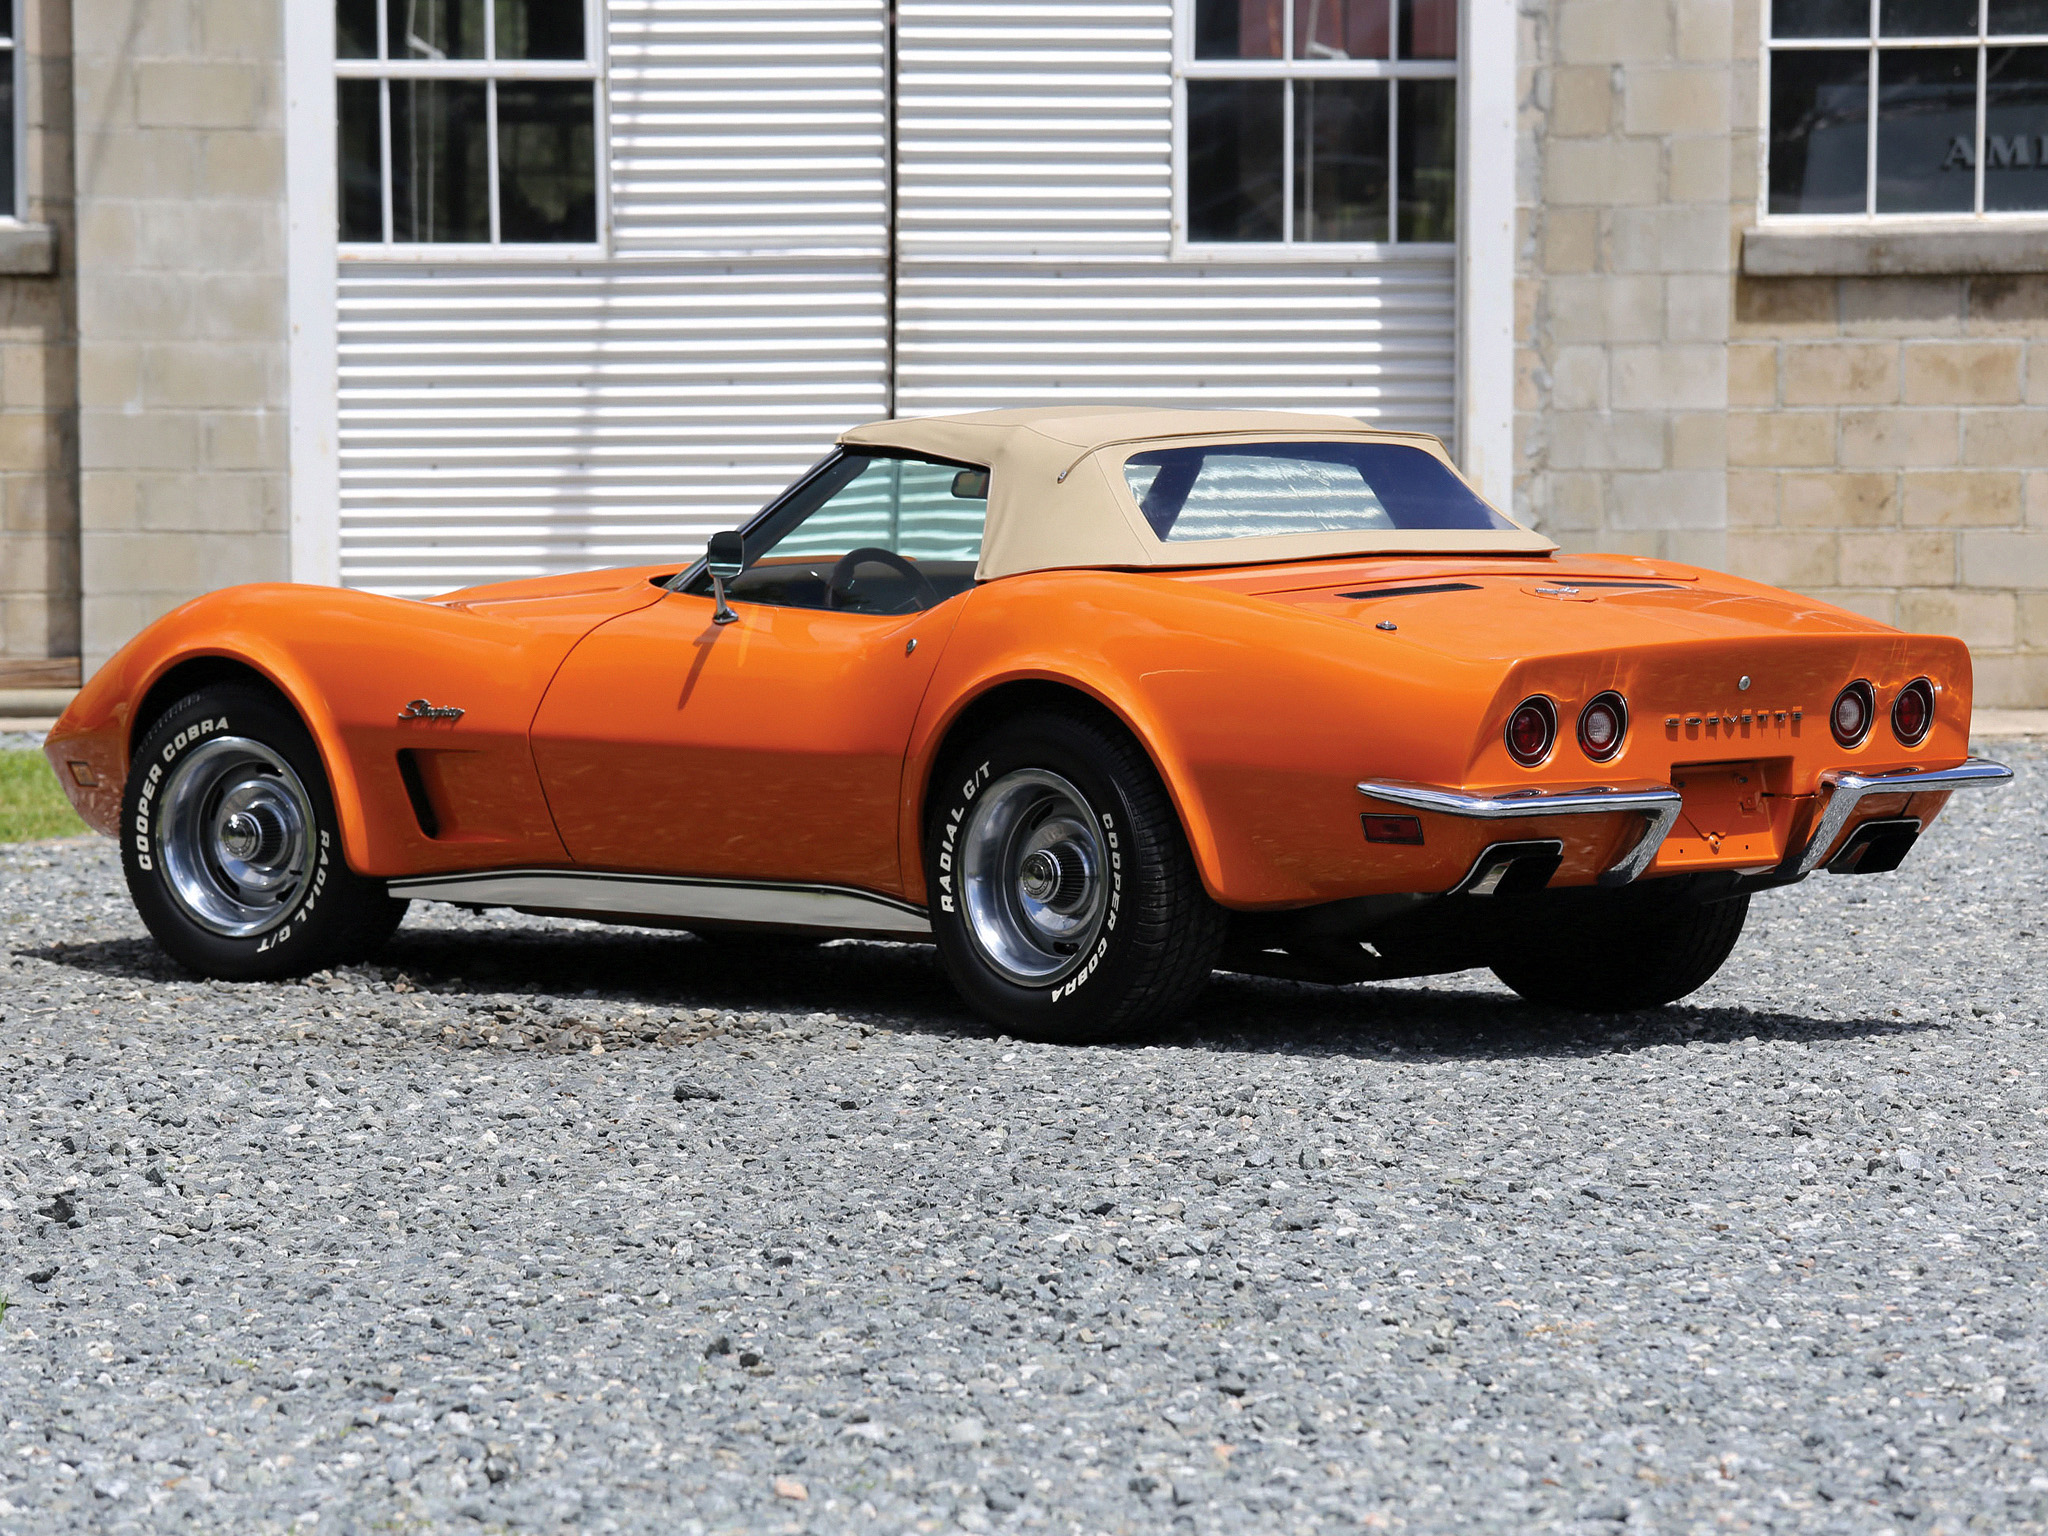 Picture of 1973 chevrolet corvette coupe exterior - 1973 Chevrolet Corvette Stingray Convertible C 3 Supercar Muscle Classic Fs Wallpaper 2048x1536 141205 Wallpaperup